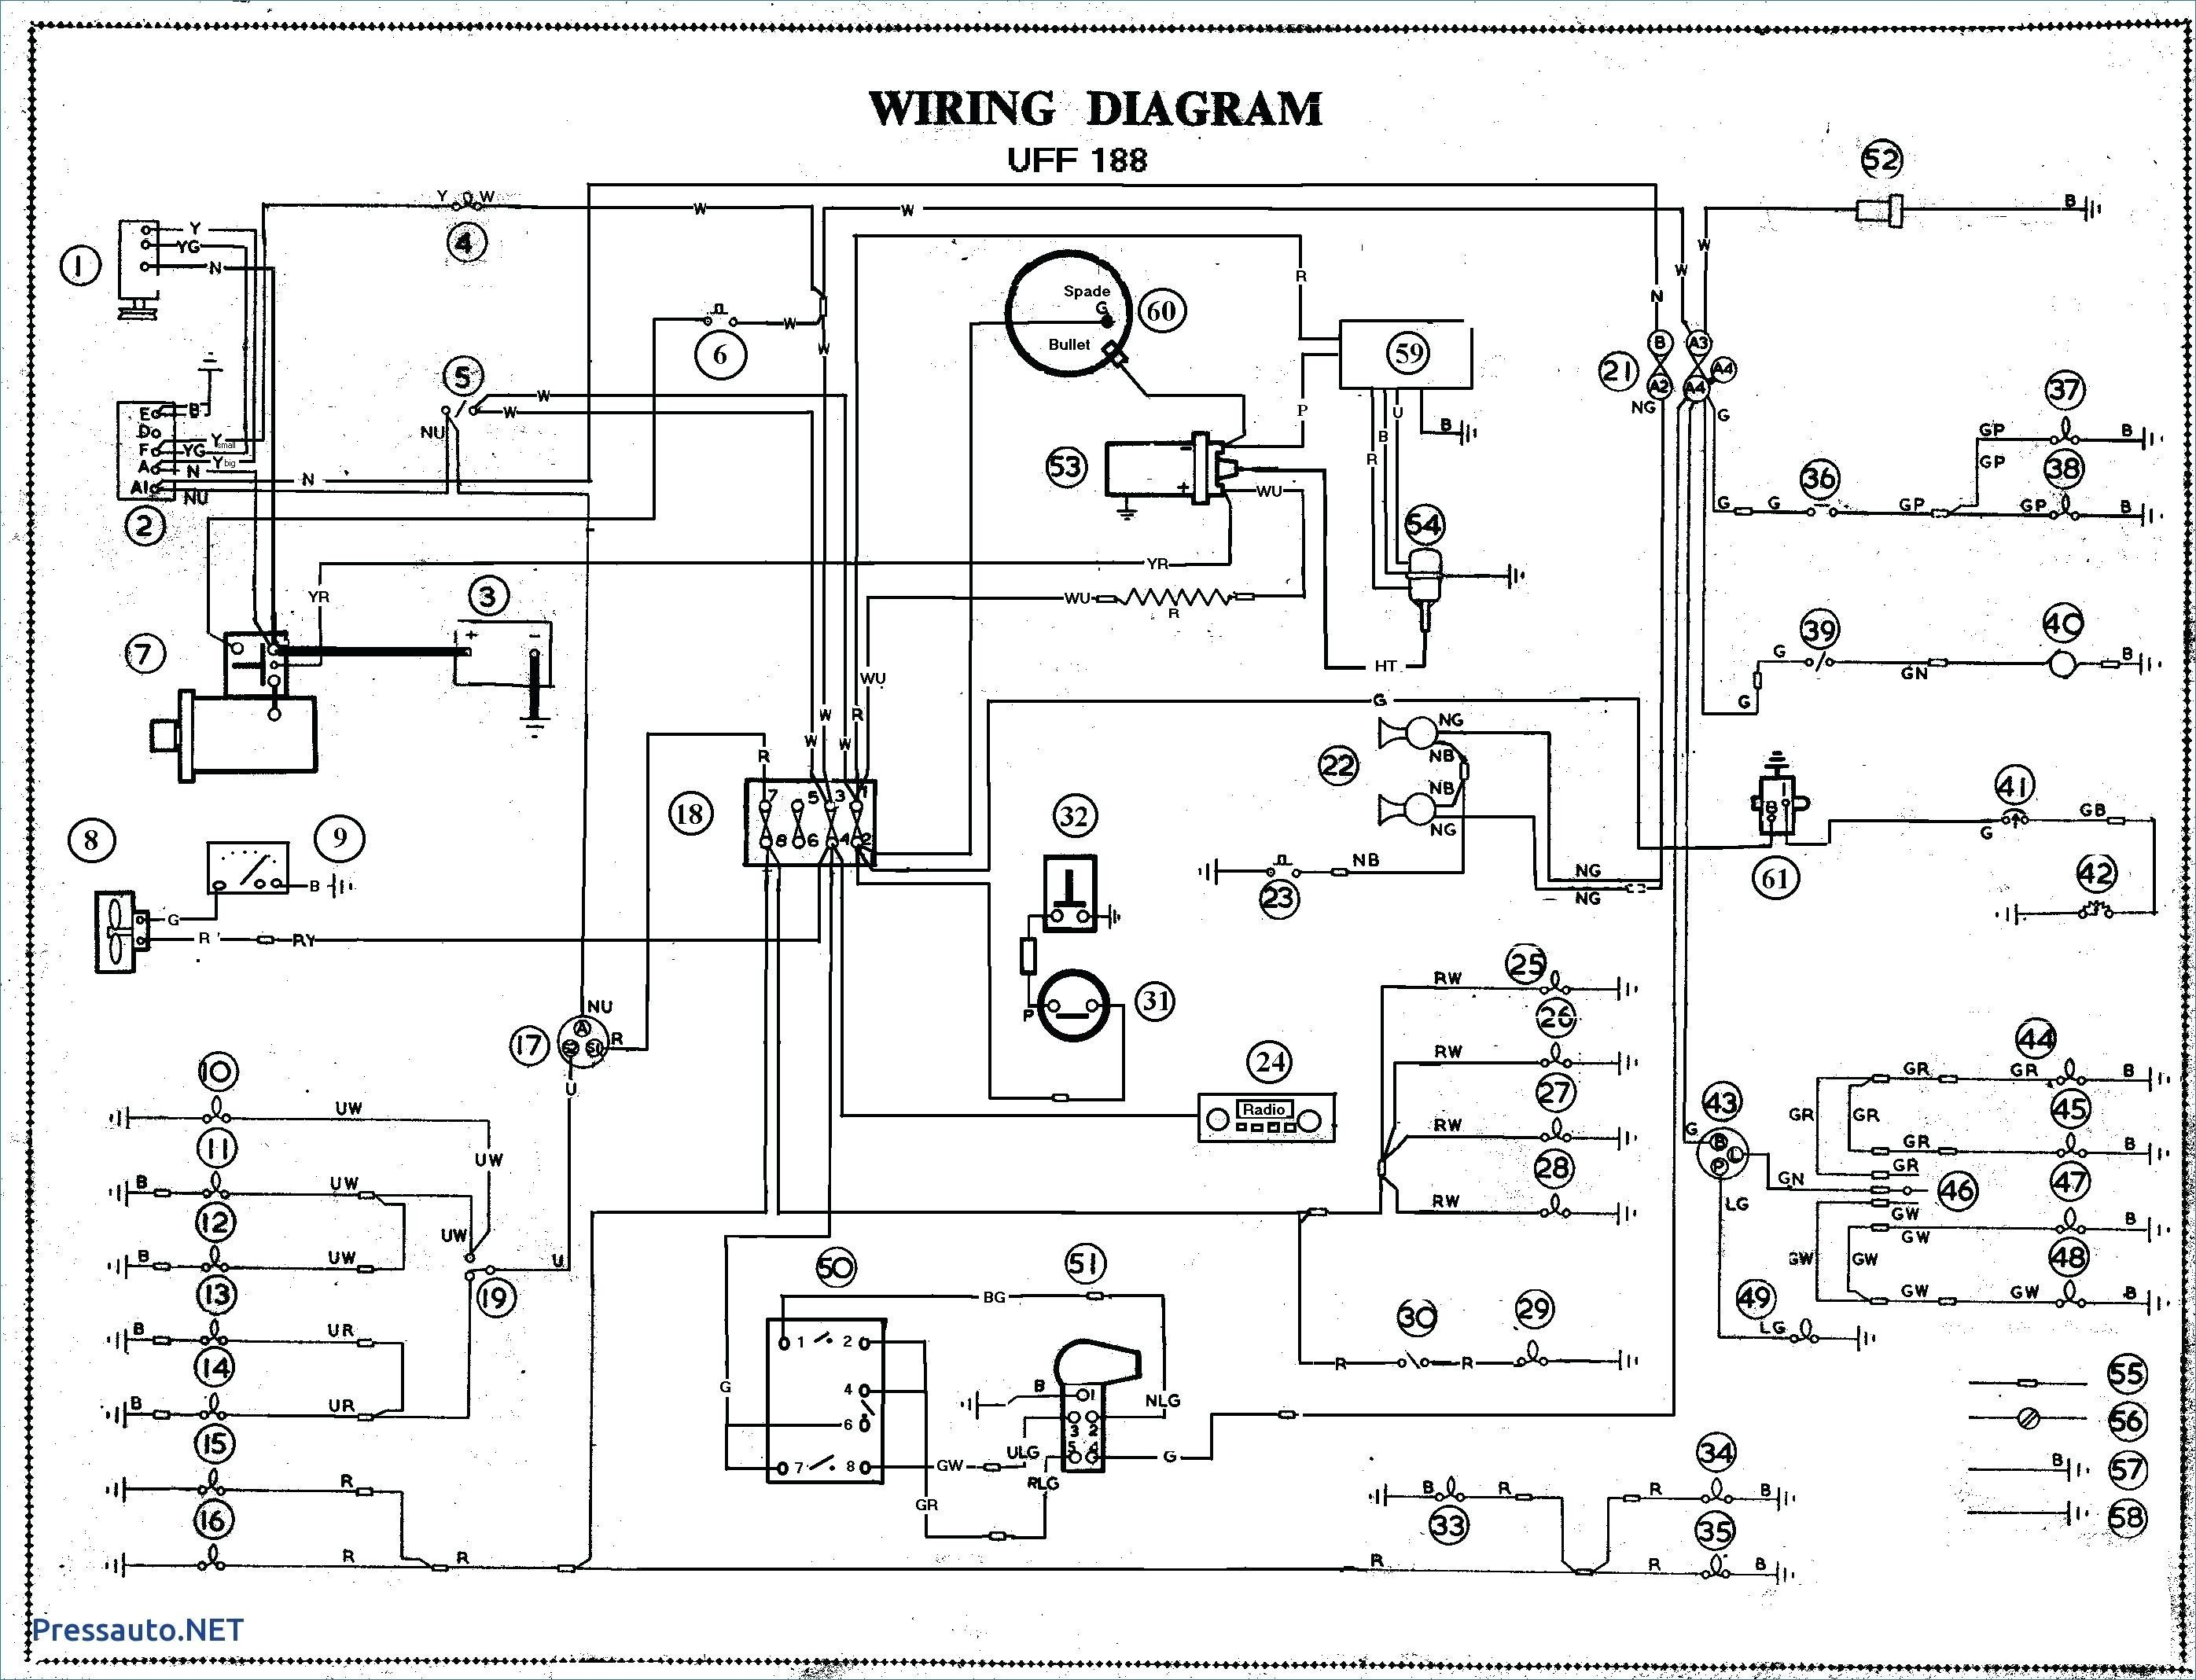 CX_3897] Typical Car Stereo Wiring Diagram Wiring DiagramIosto Sapebe Mohammedshrine Librar Wiring 101